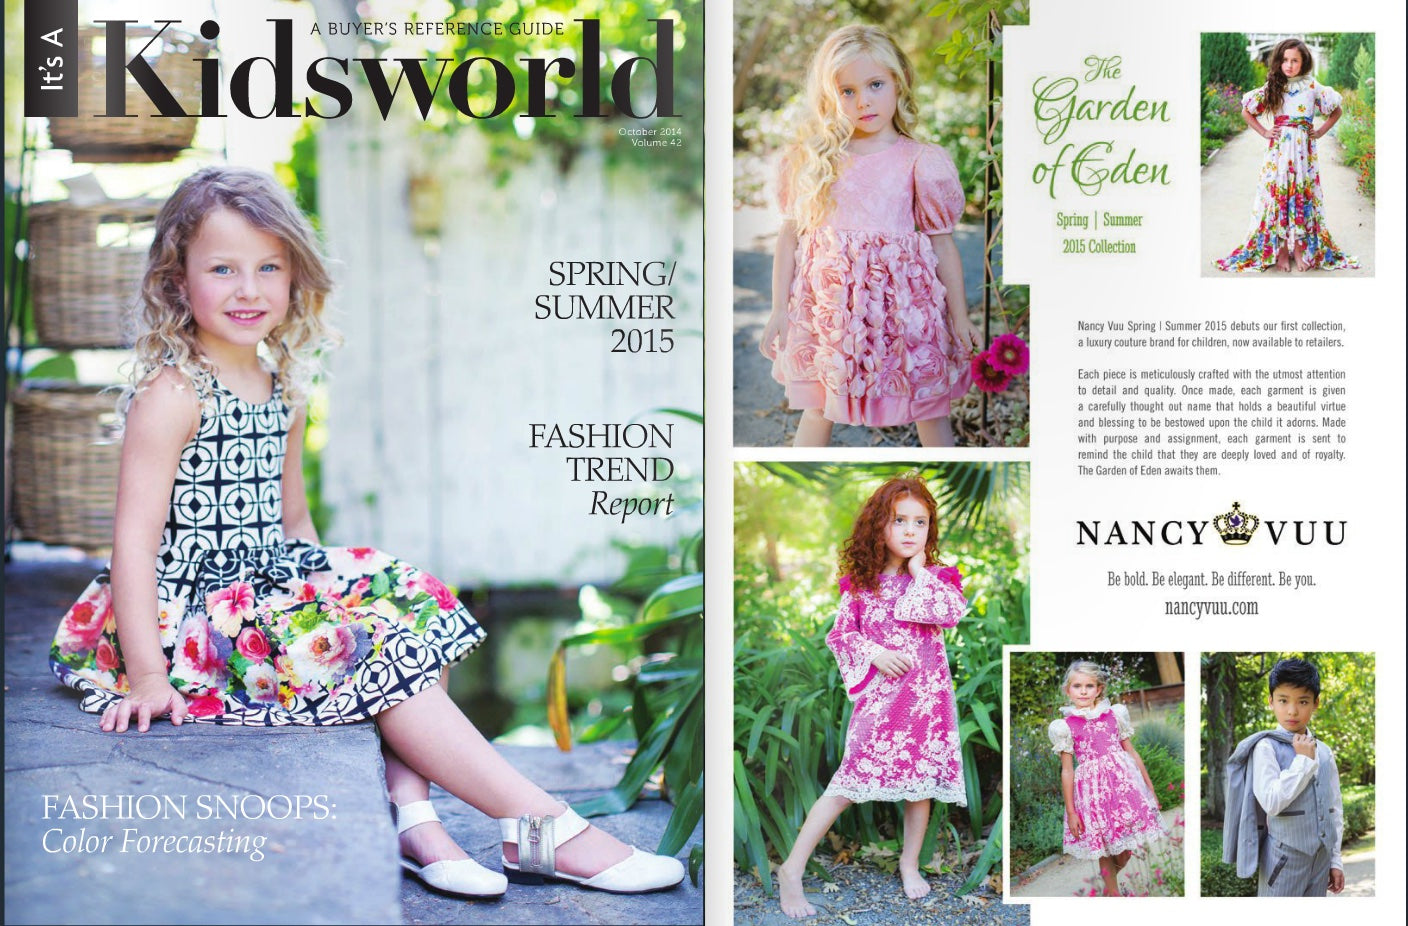 Featured: It's a Kidsworld